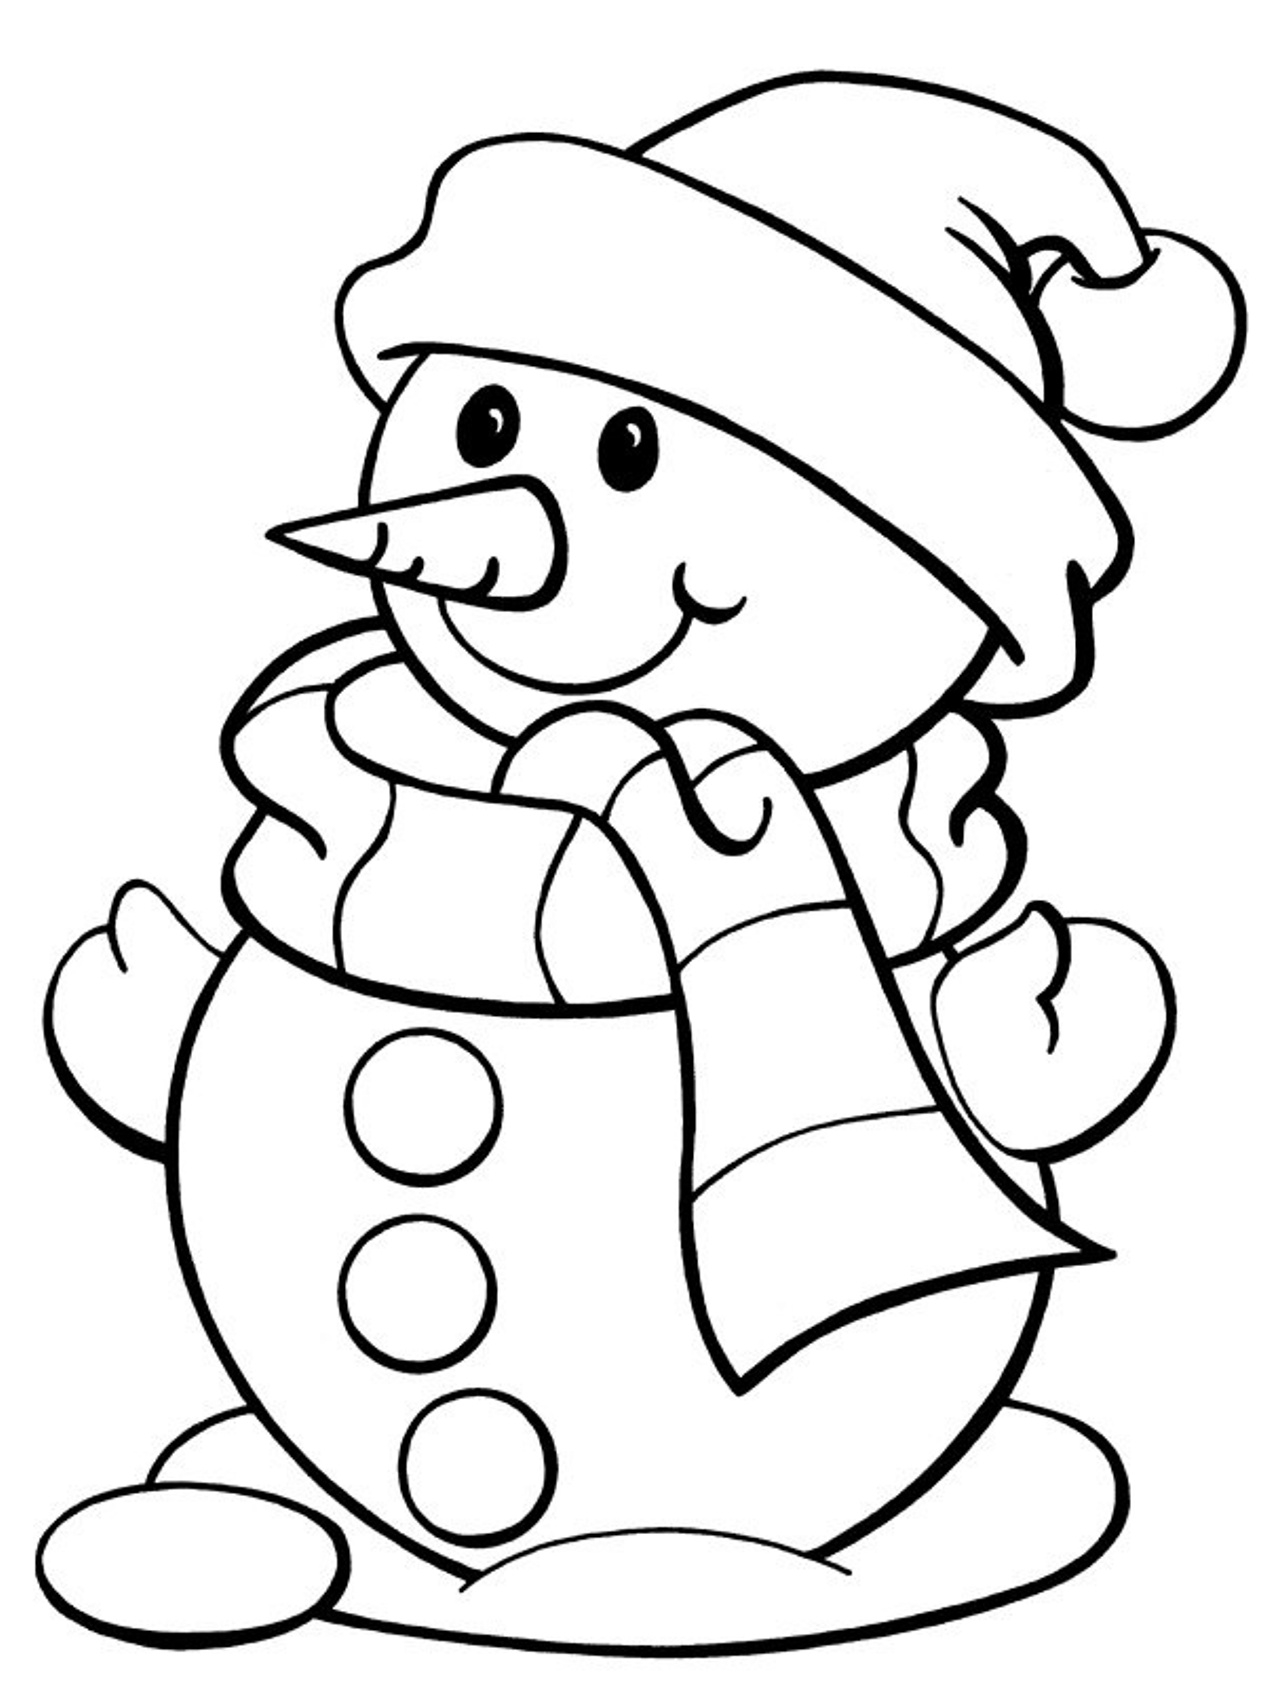 hd wallpapers beanie boo coloring pages nog nebocom press